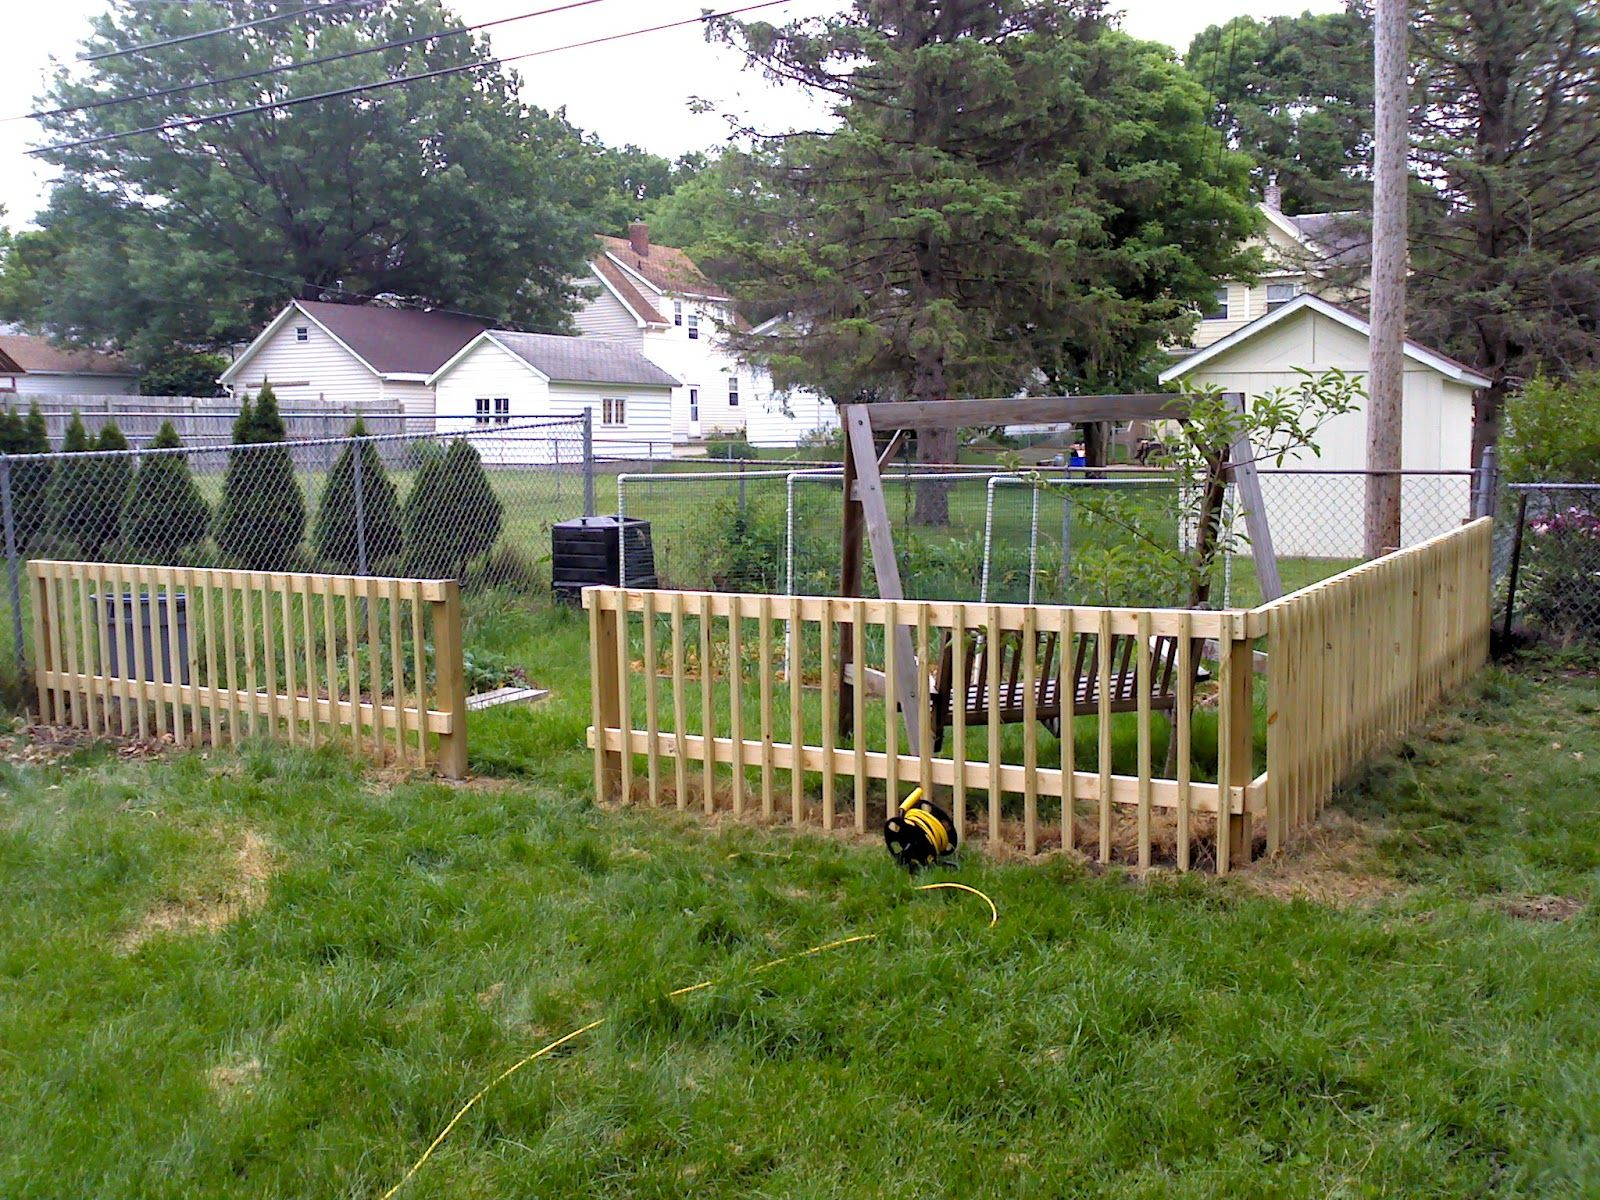 17 Diy Garden Fence Ideas To Keep Your Plants Diy Craft